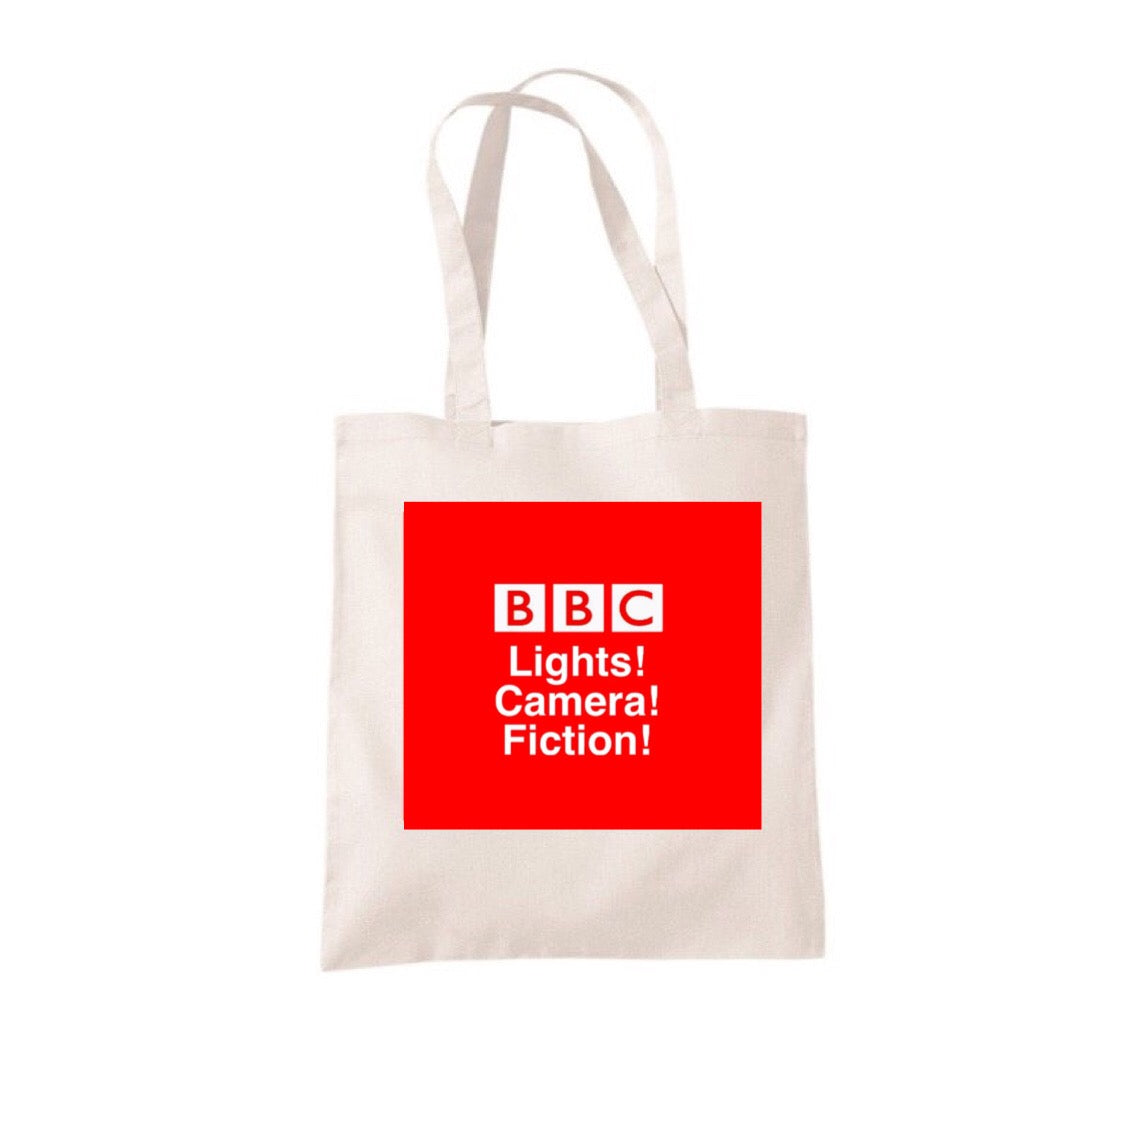 BBC - Lights! Camera! Fiction! Tote Bag